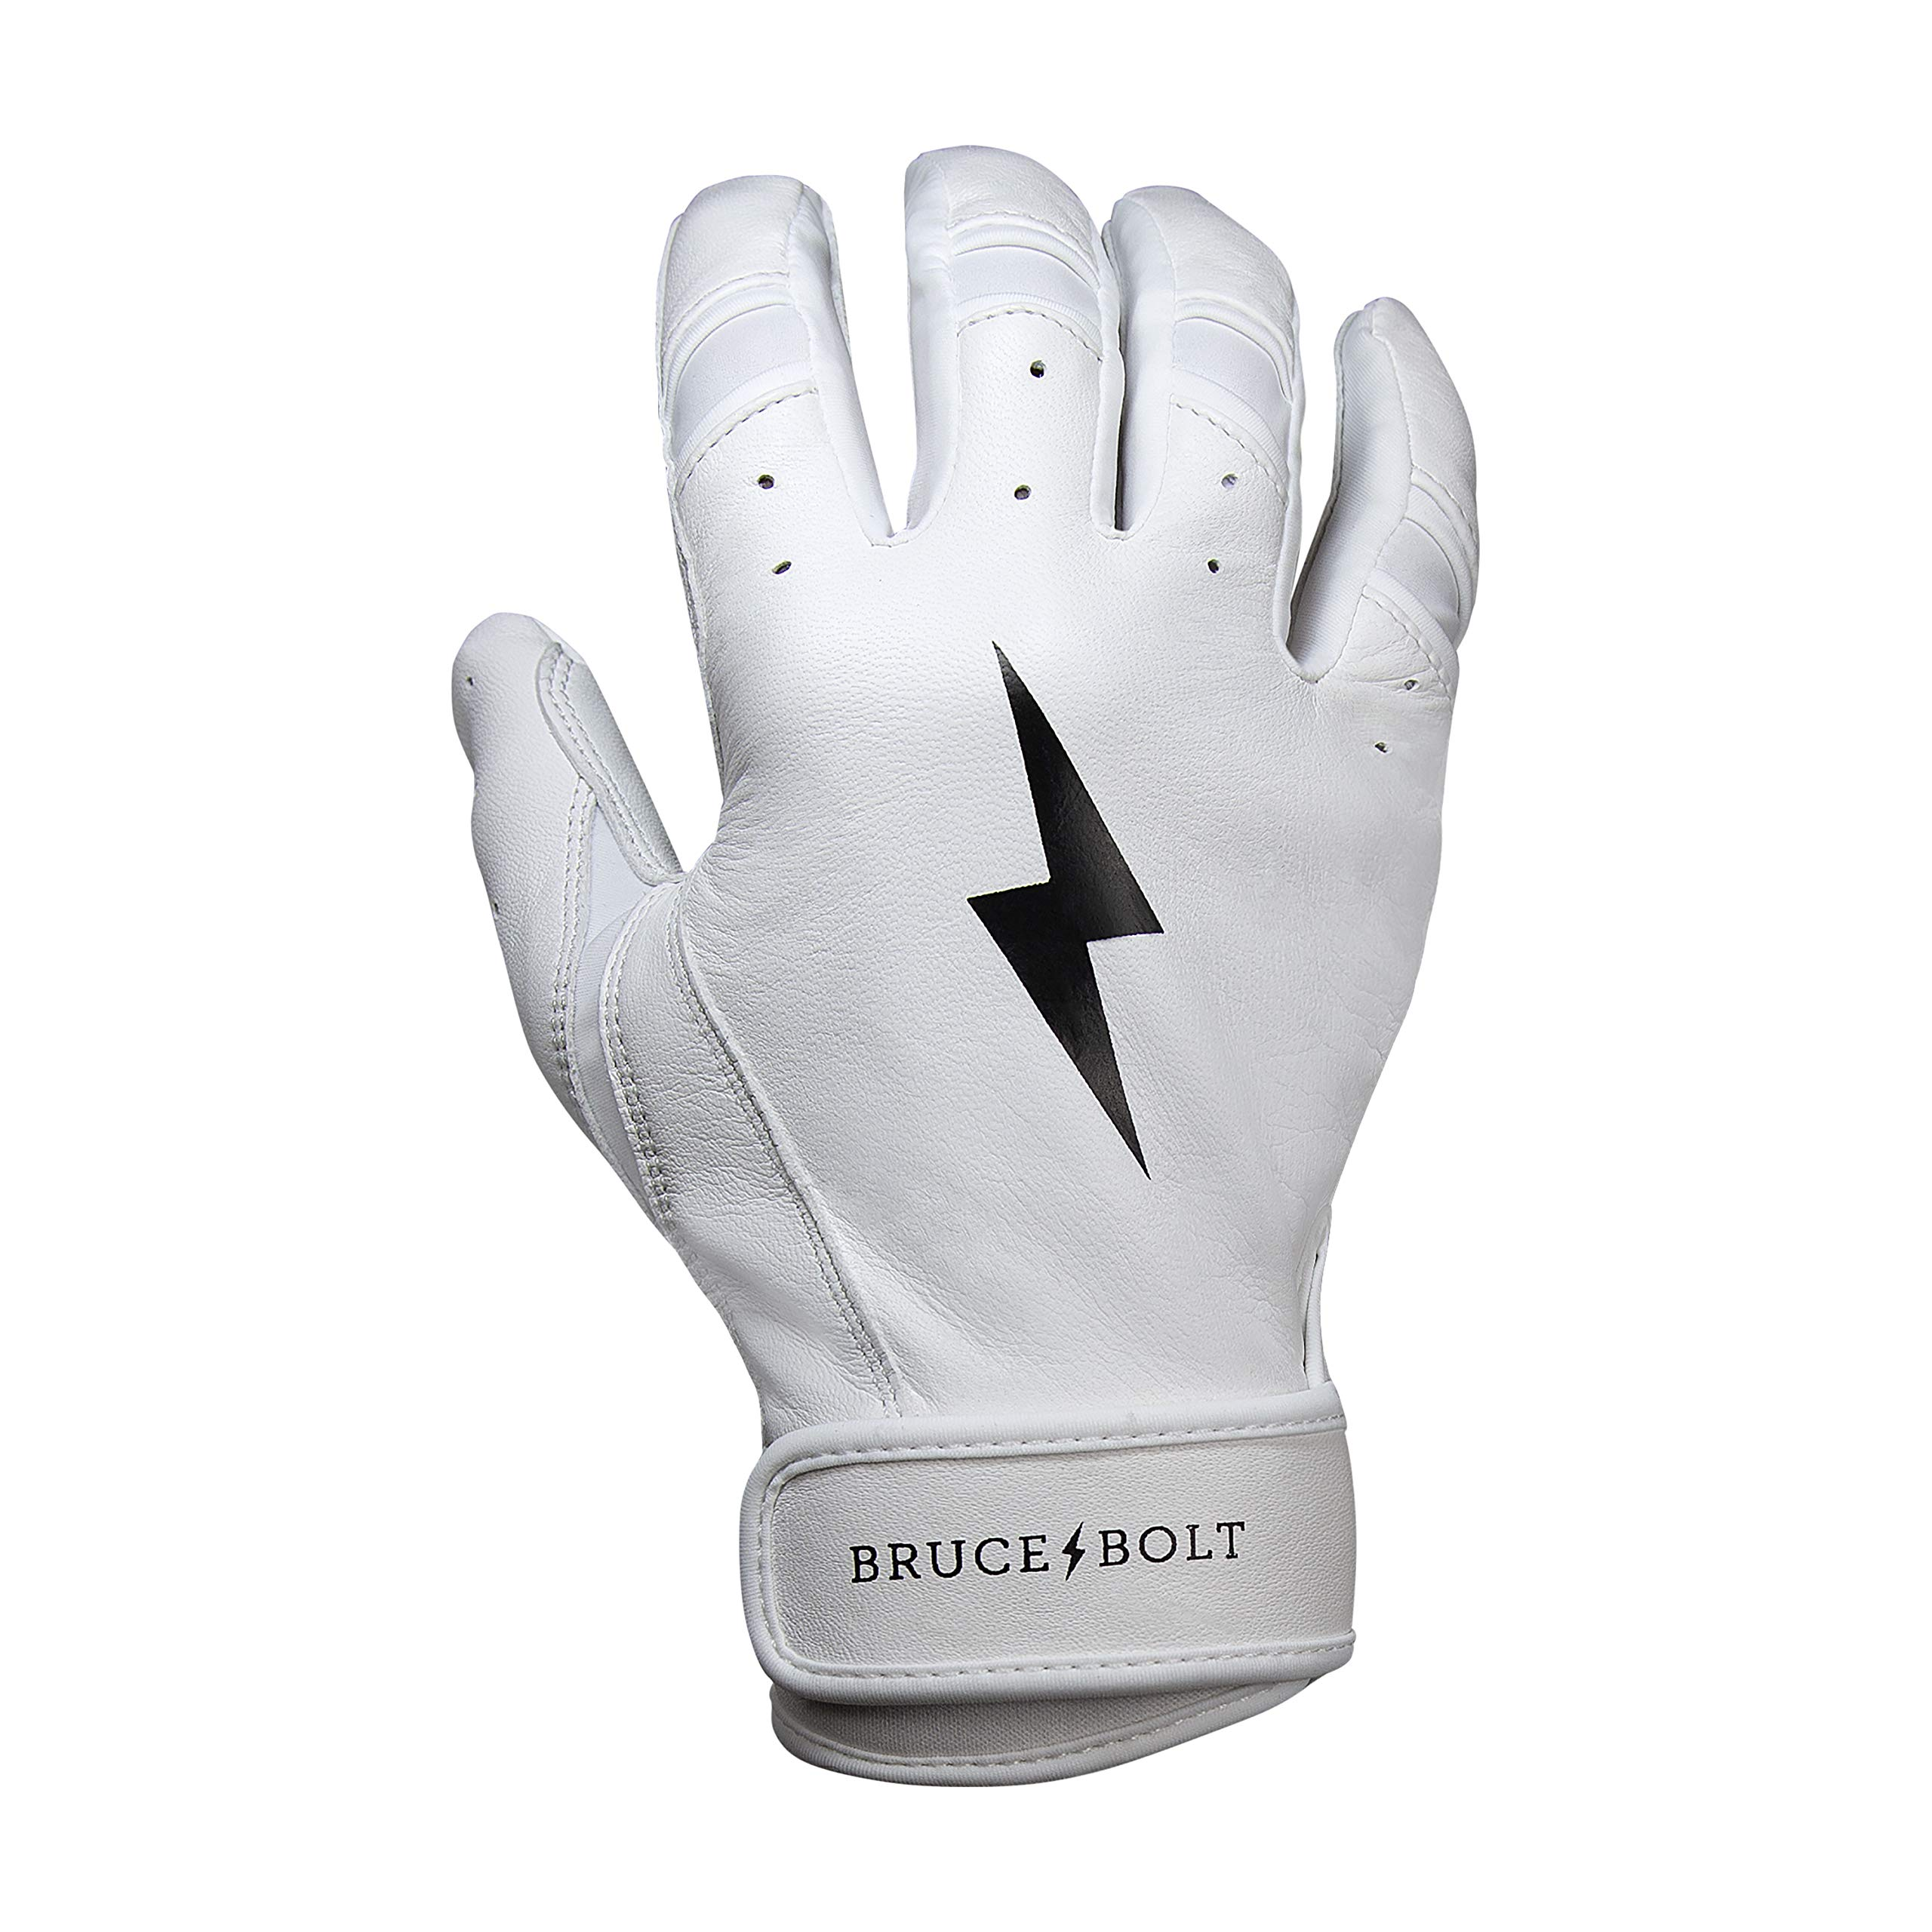 BRUCE+BOLT Premium Short Cuff Batting Gloves - White Large SWL